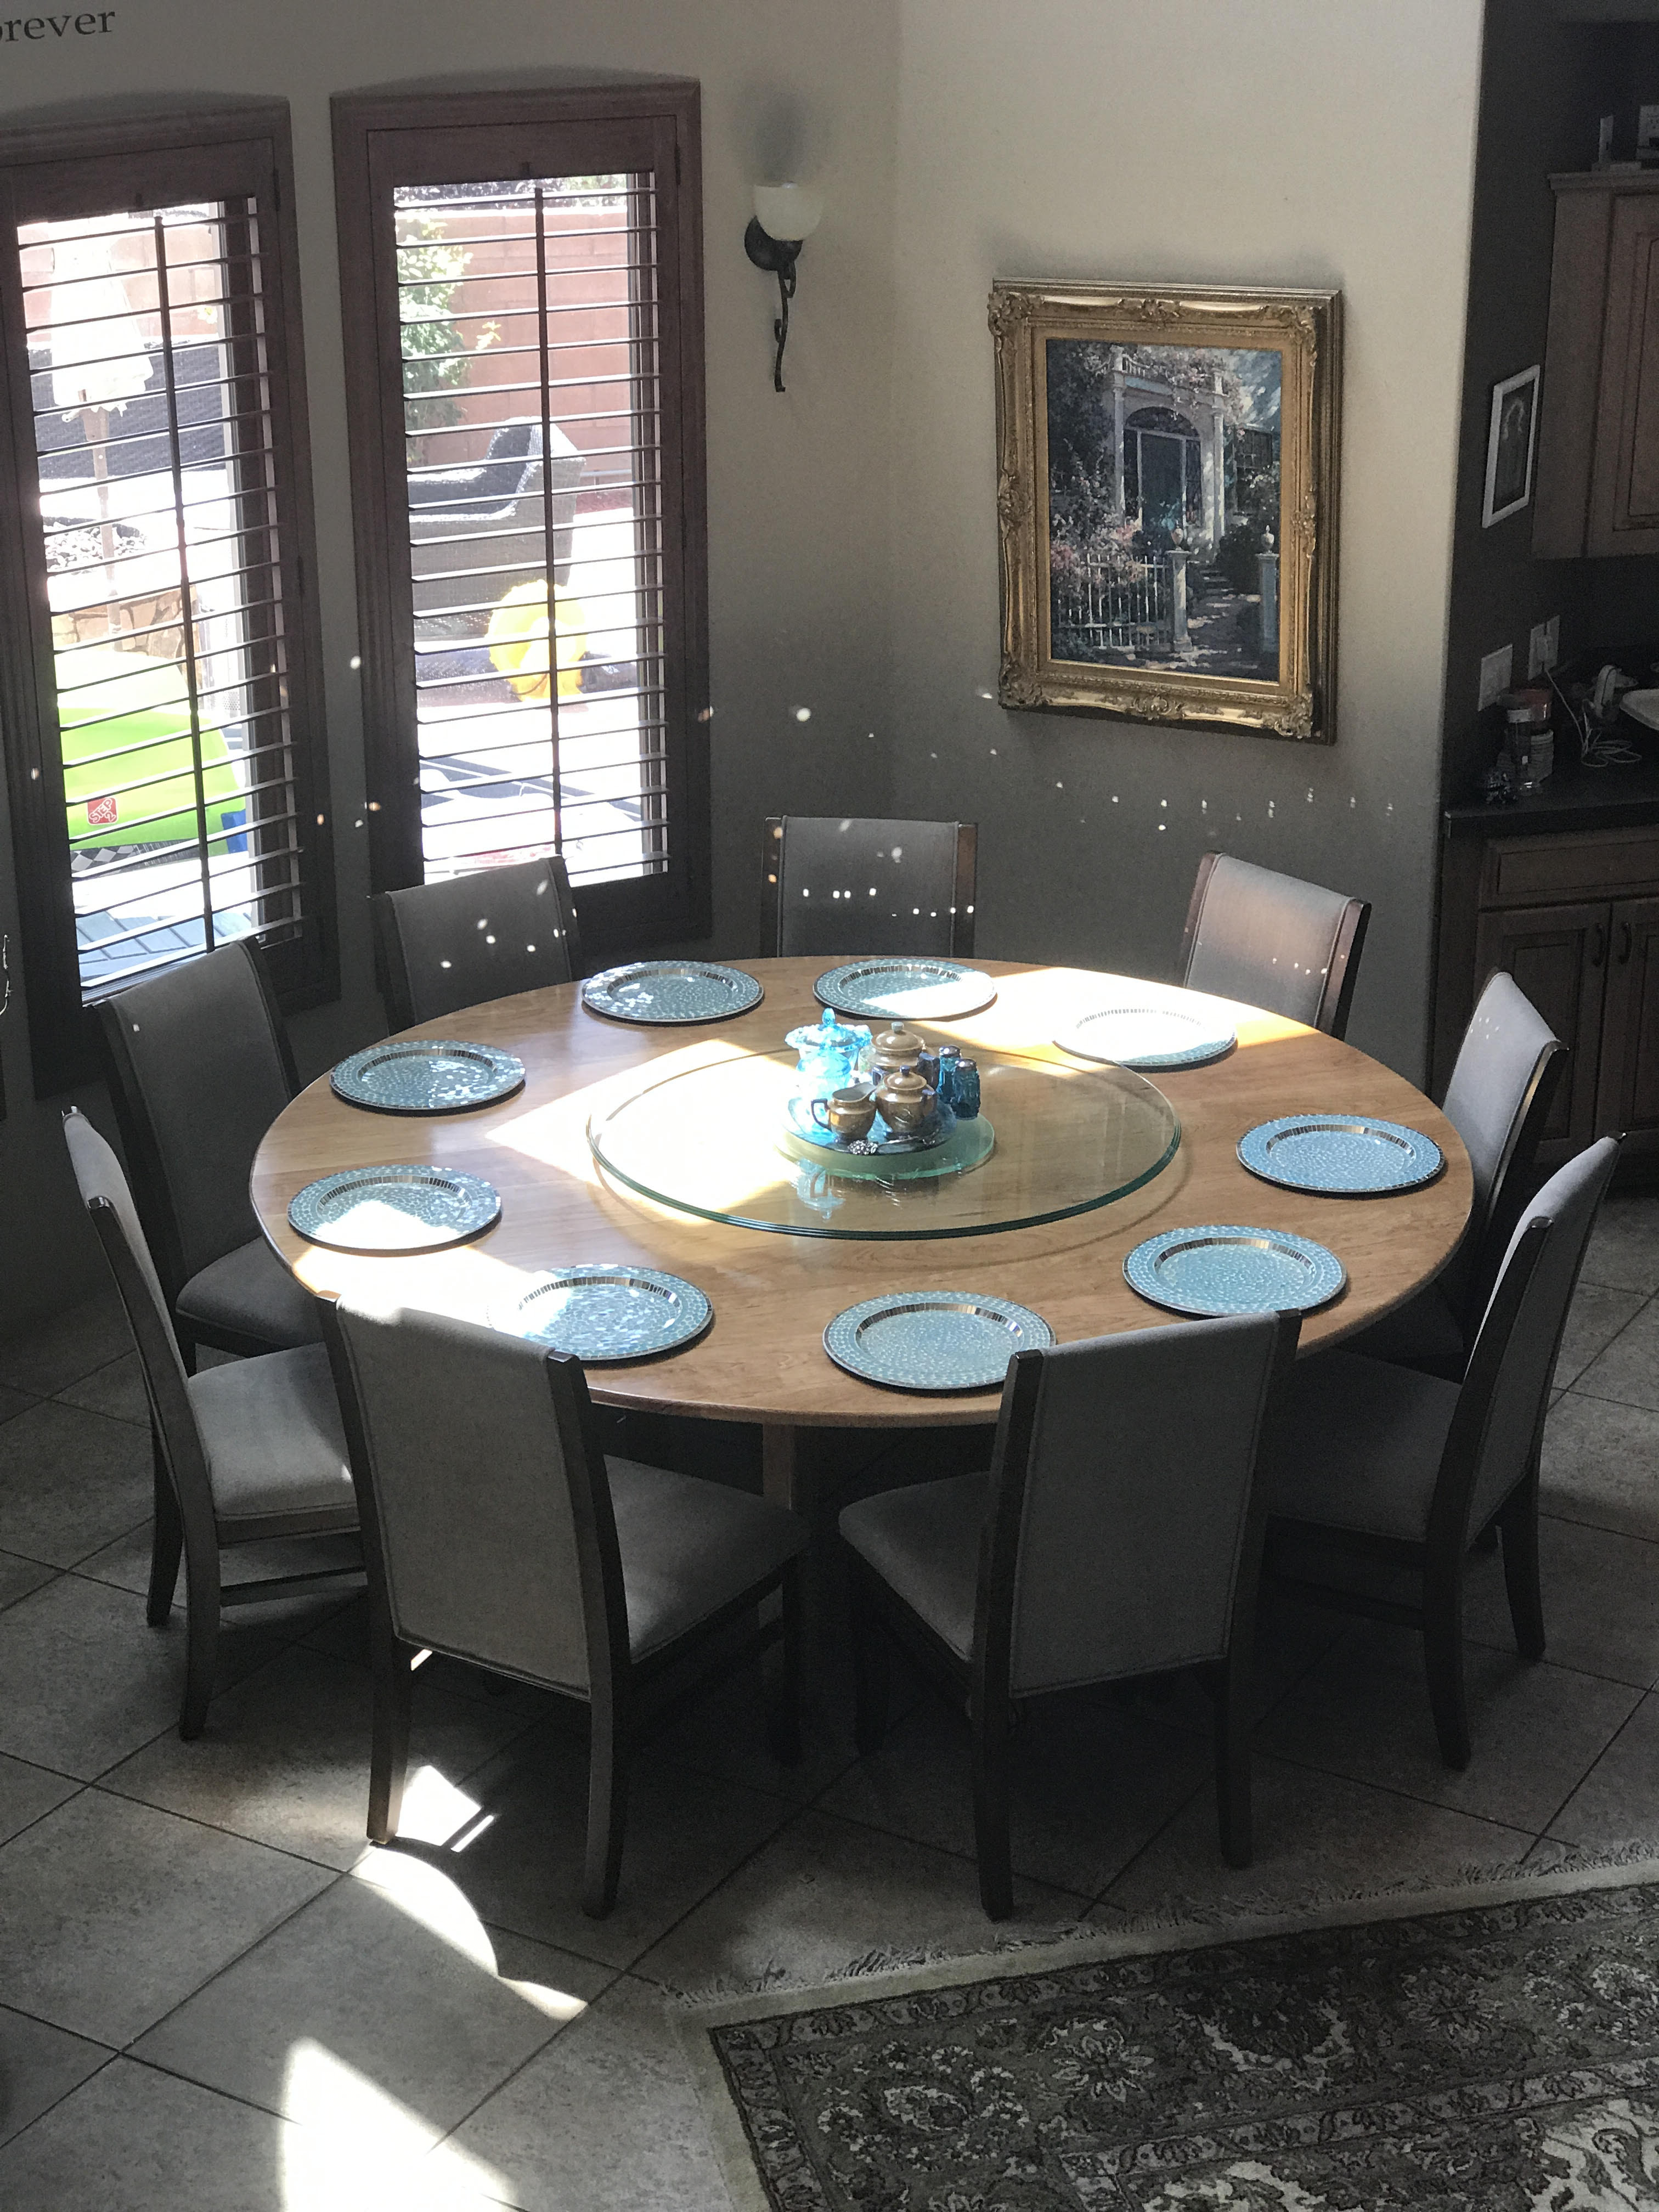 Cherry 7 foot round table